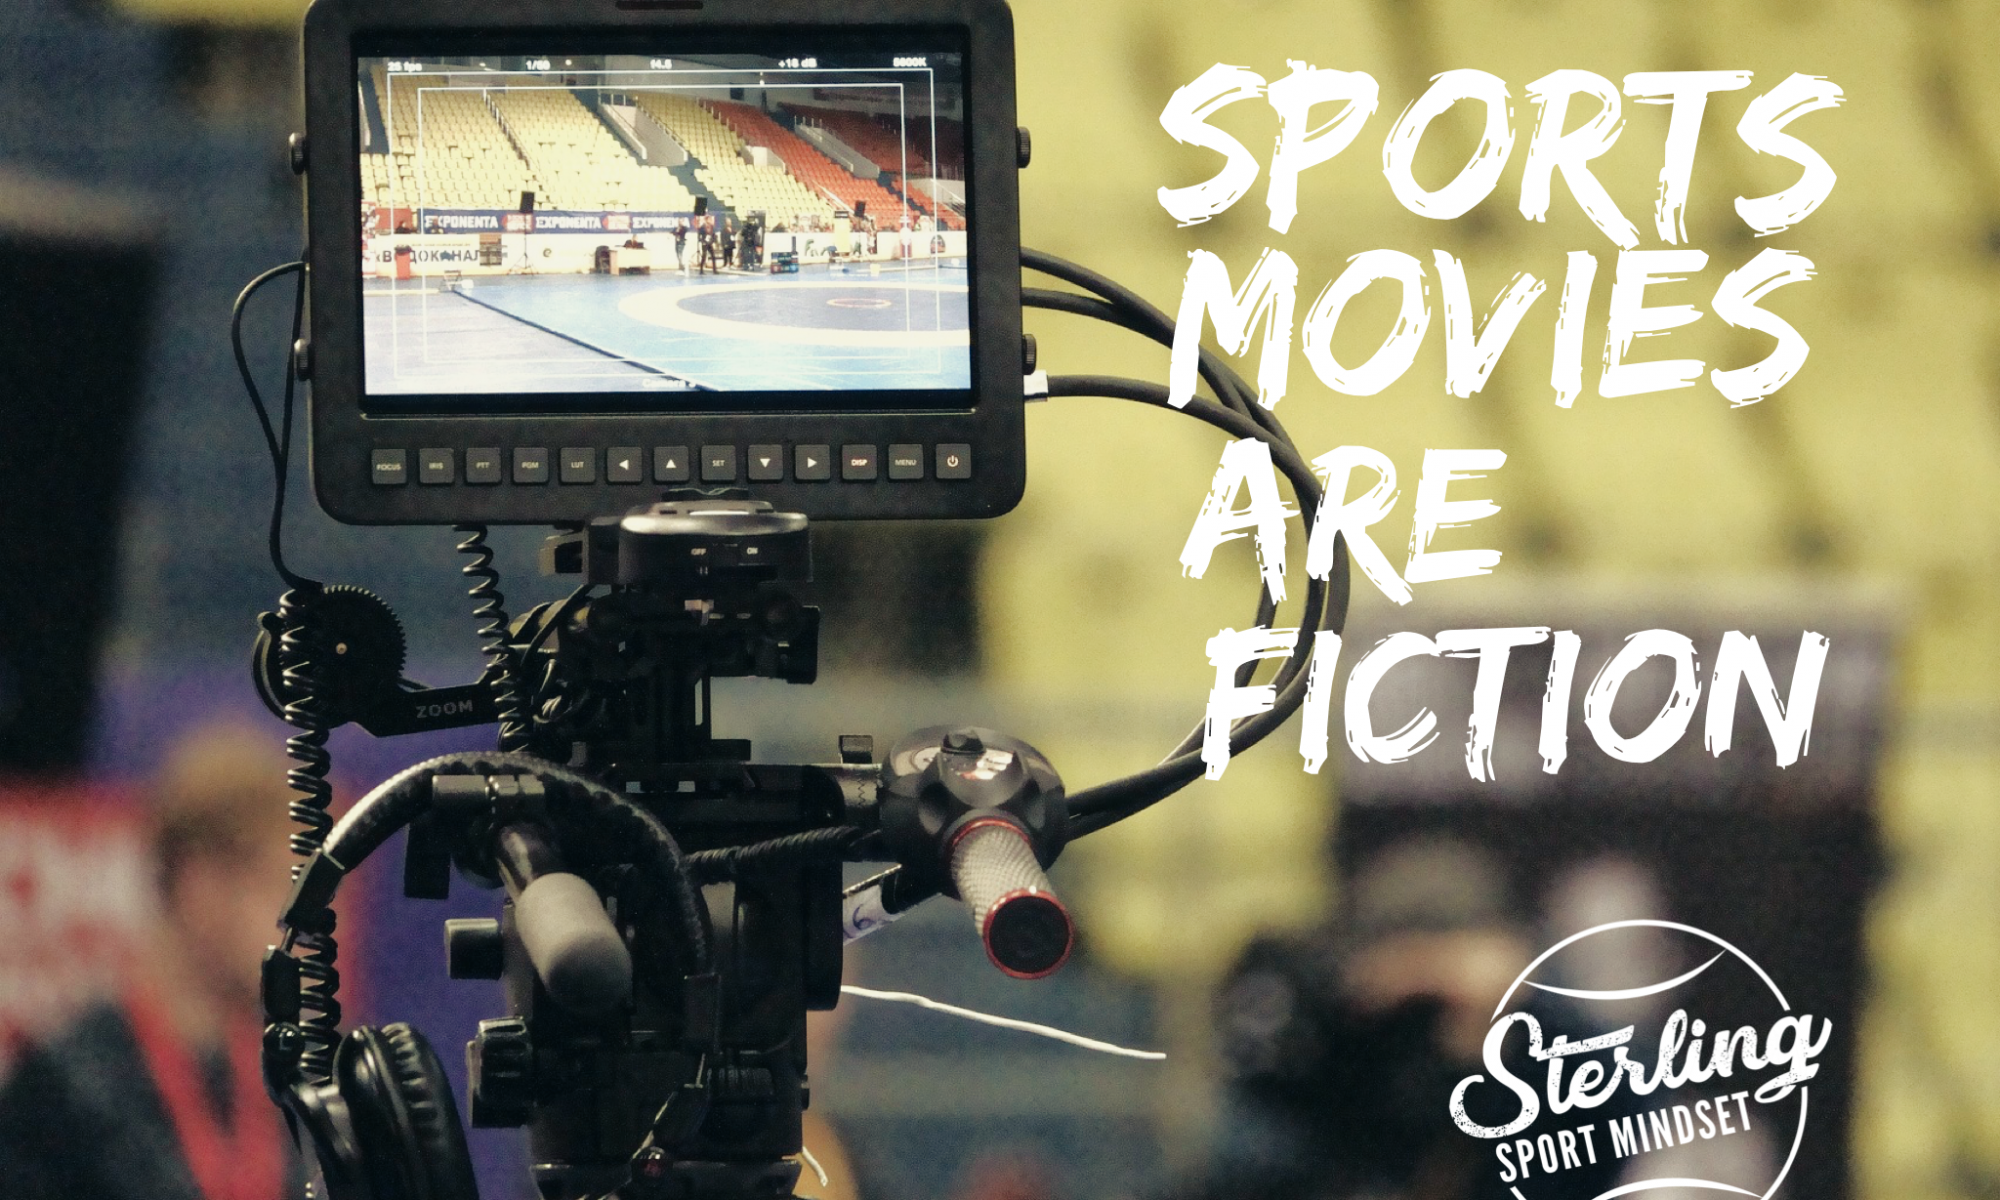 sports movies are fiction